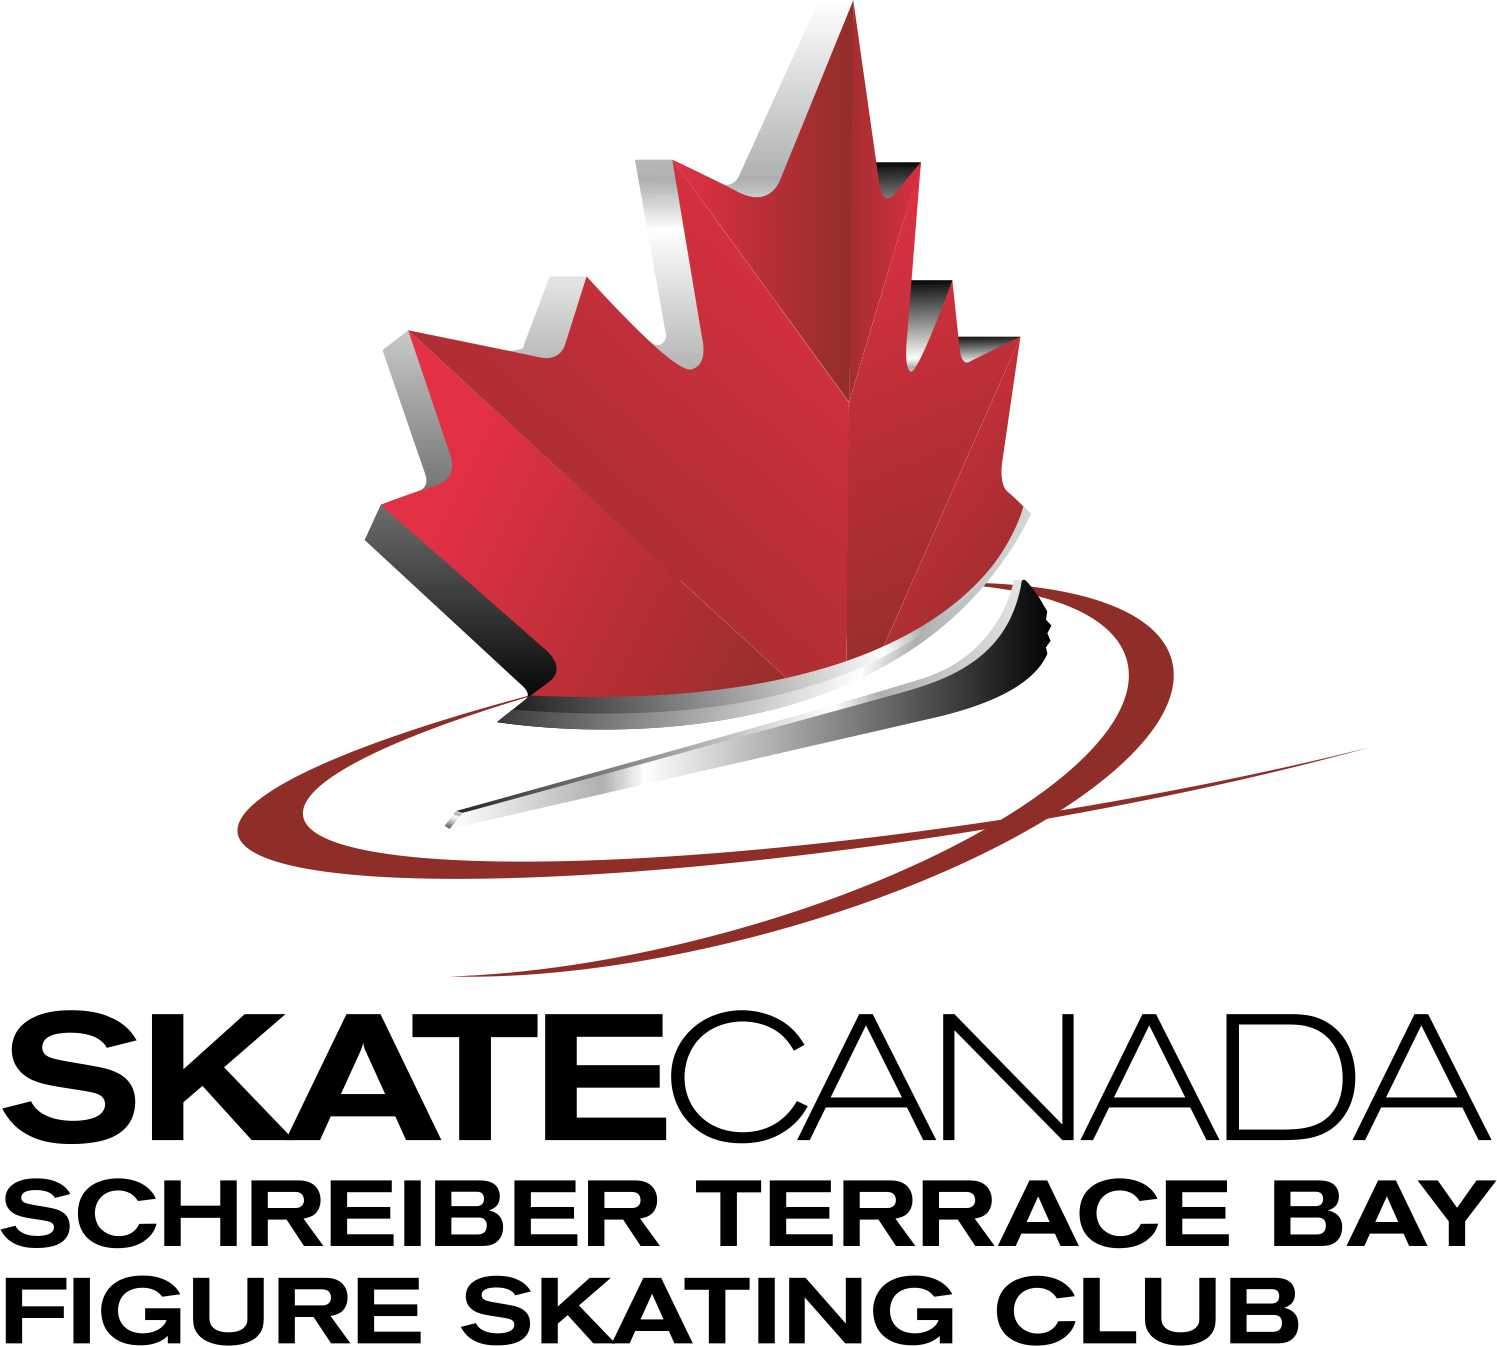 Schreiber-Terrace Bay Figure Skating Club